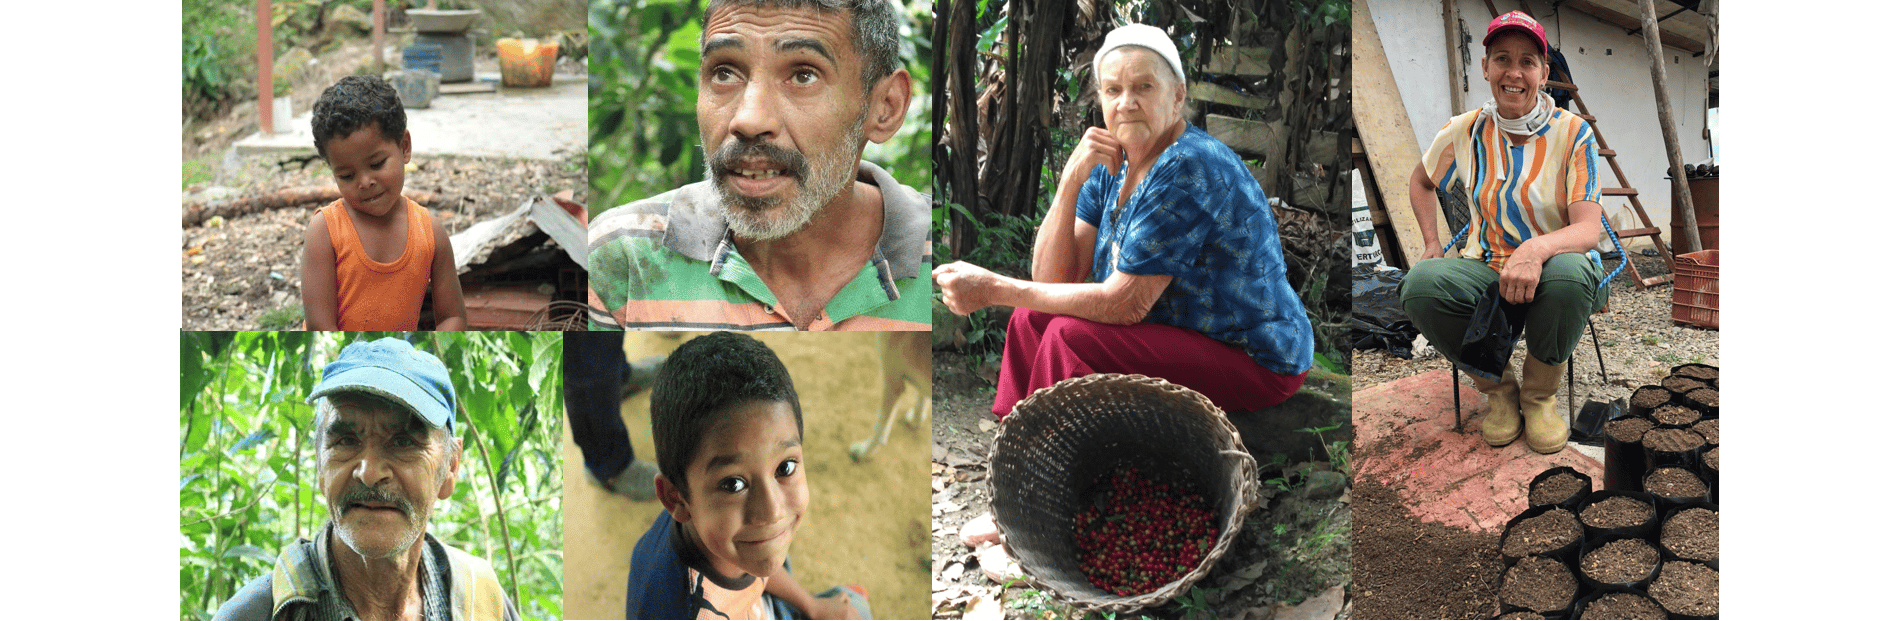 The farmers and their families in Piedra de Cachimbo and La Florida